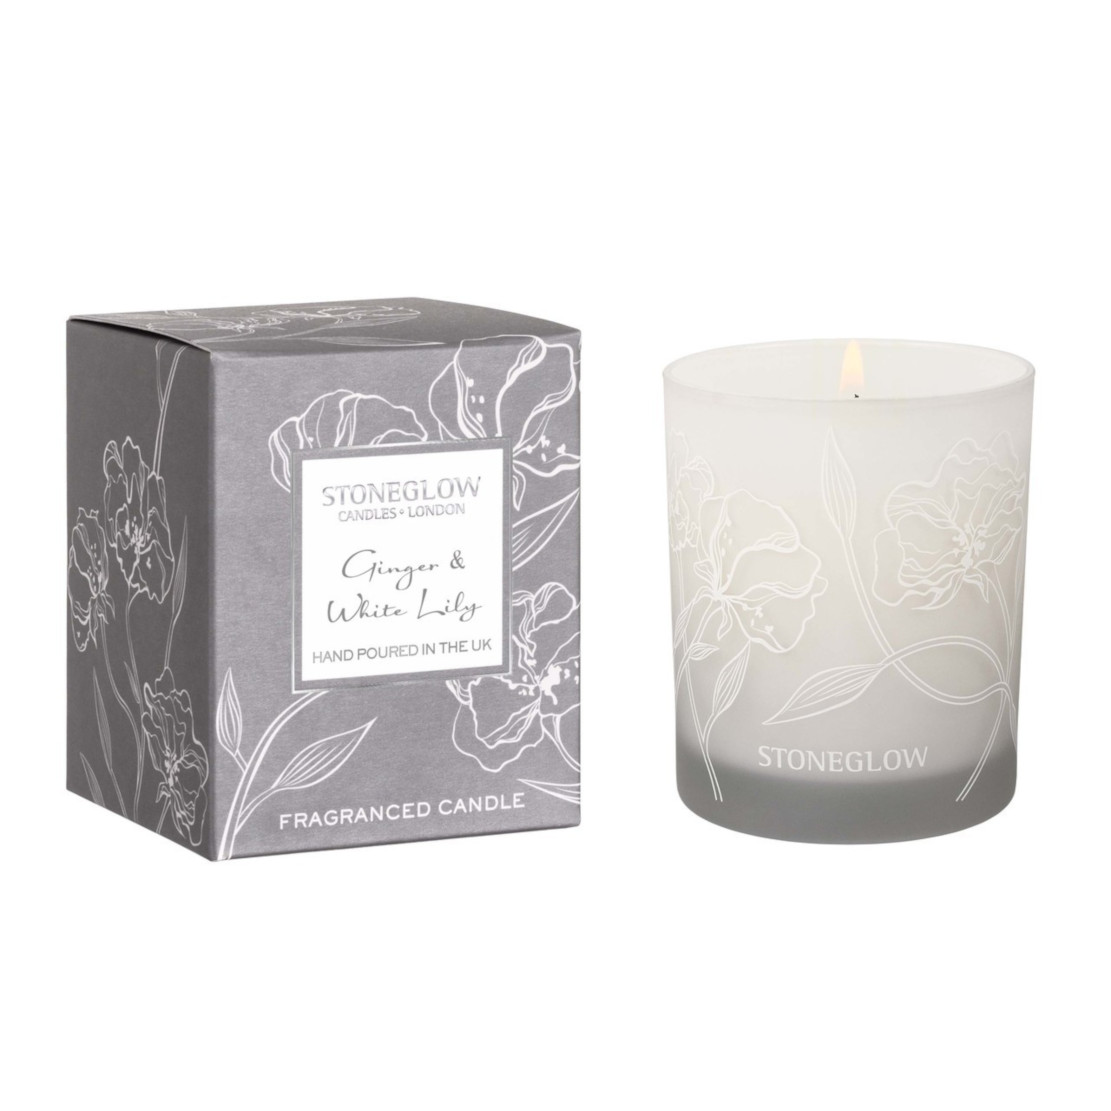 Stoneglow Day Flower Ginger & White Lily Tumbler